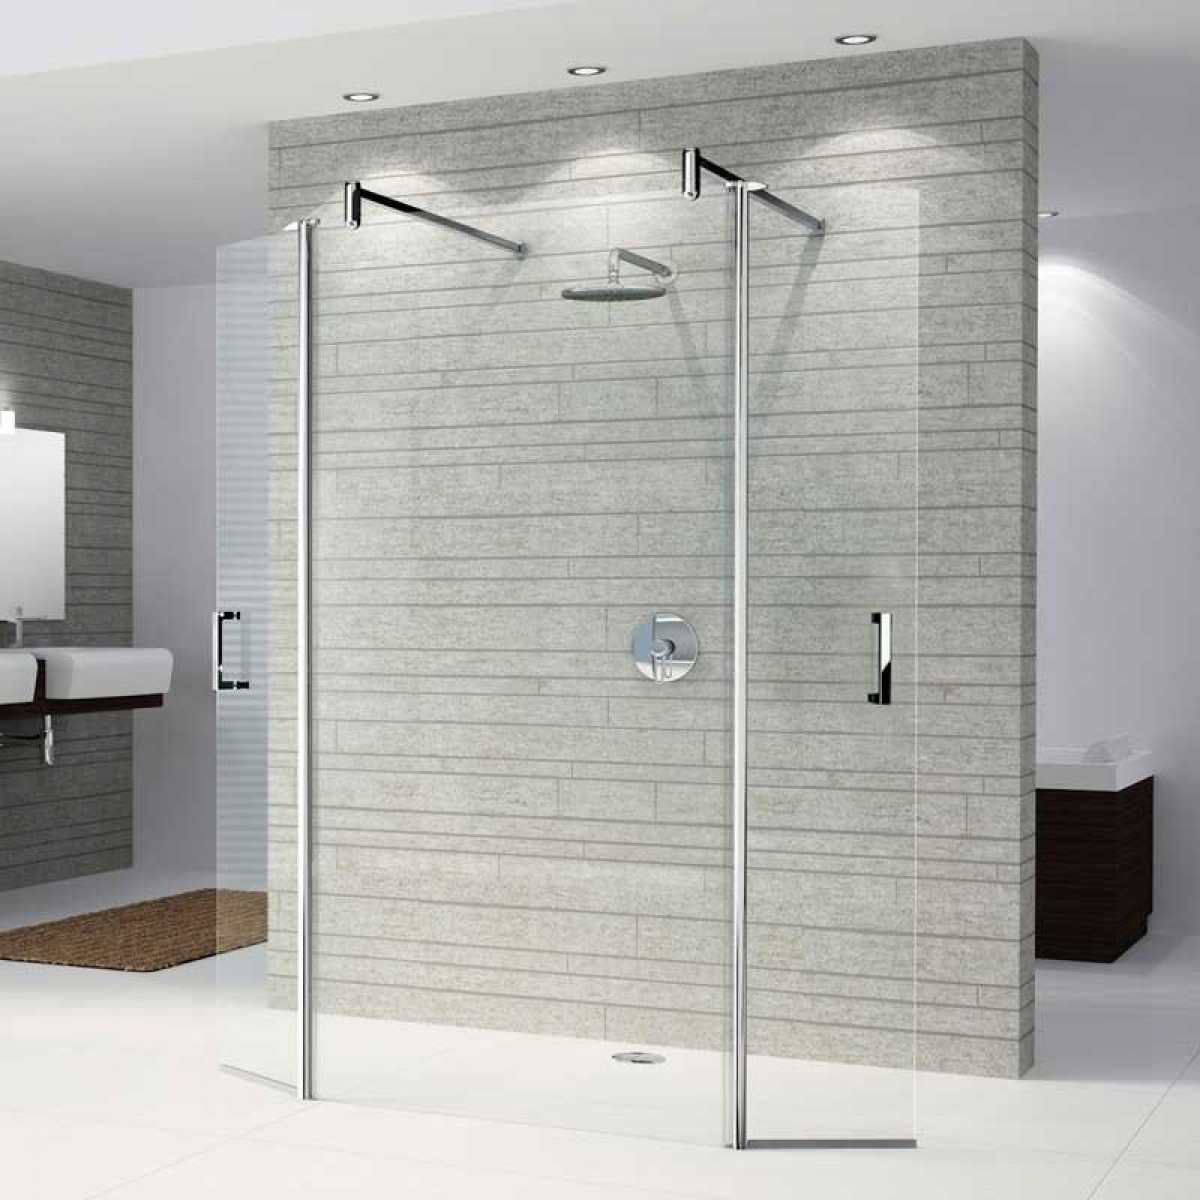 Walk In Standing Shower With Glass Wall And No Door No Ledge Floor Is Continuous 10 Walk In